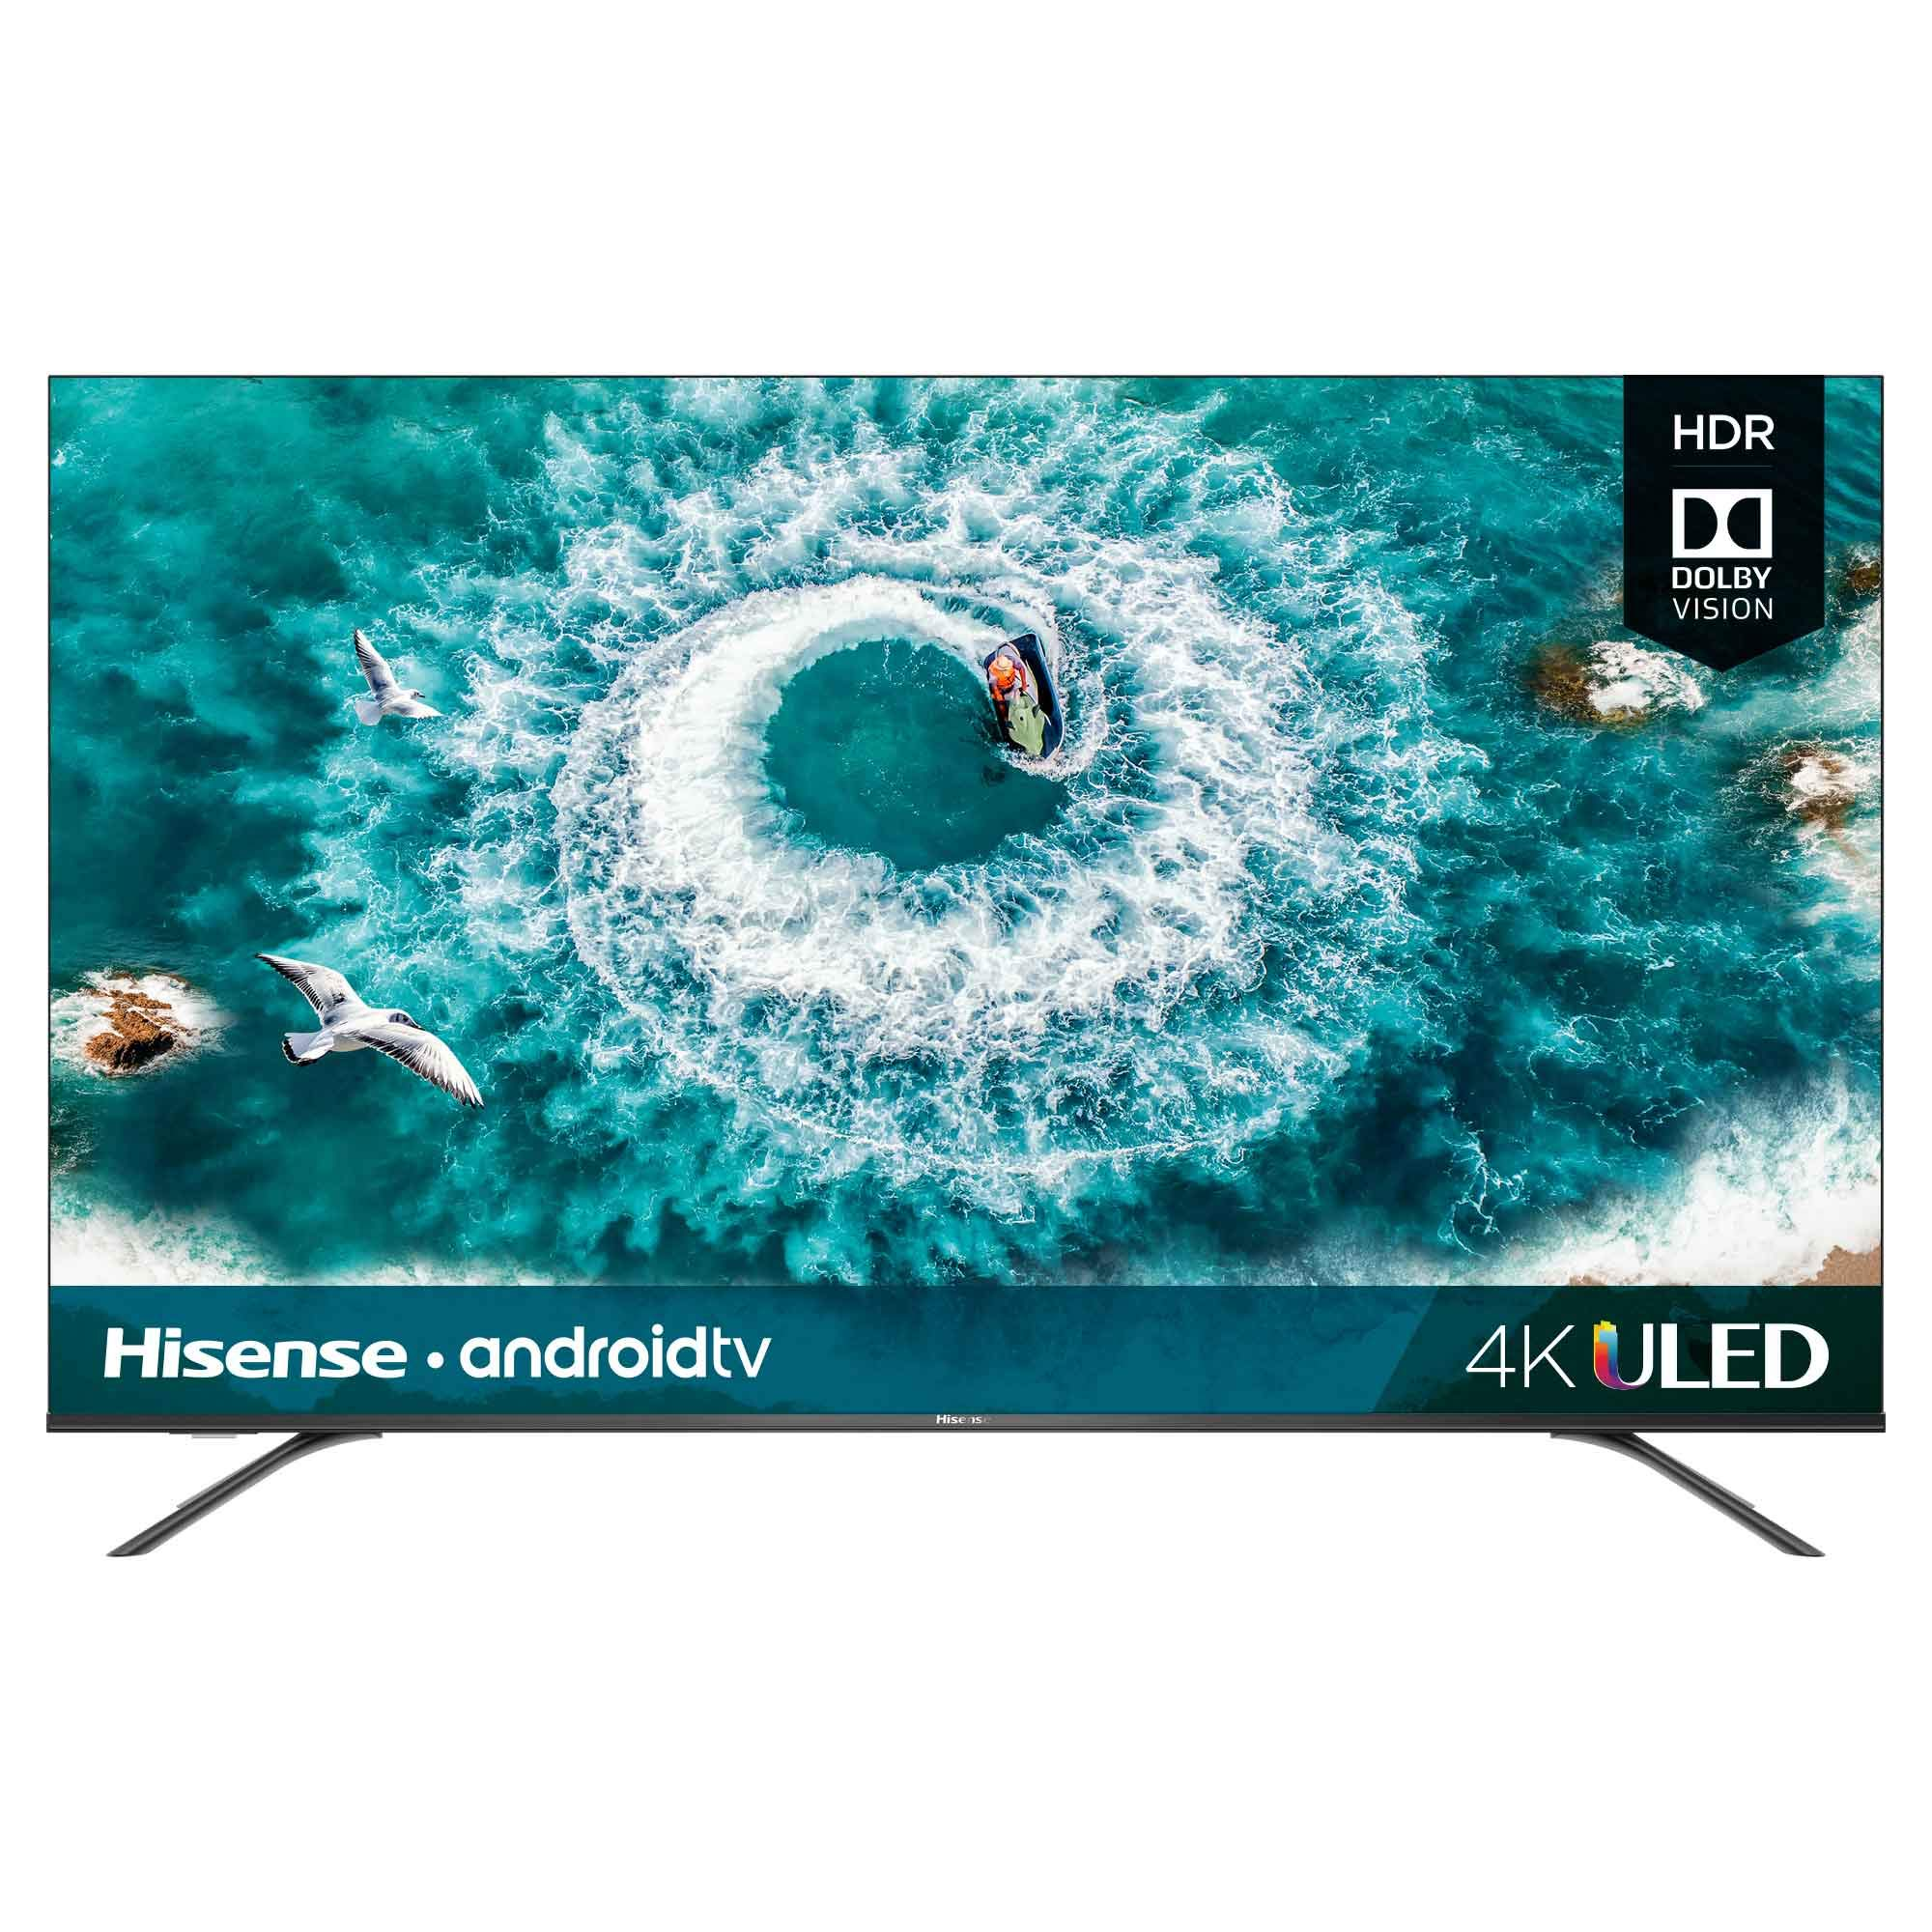 Hisense 55H8F 55-inch 4K Ultra HD Android Smart LED TV HDR10  (2019) by Hisense